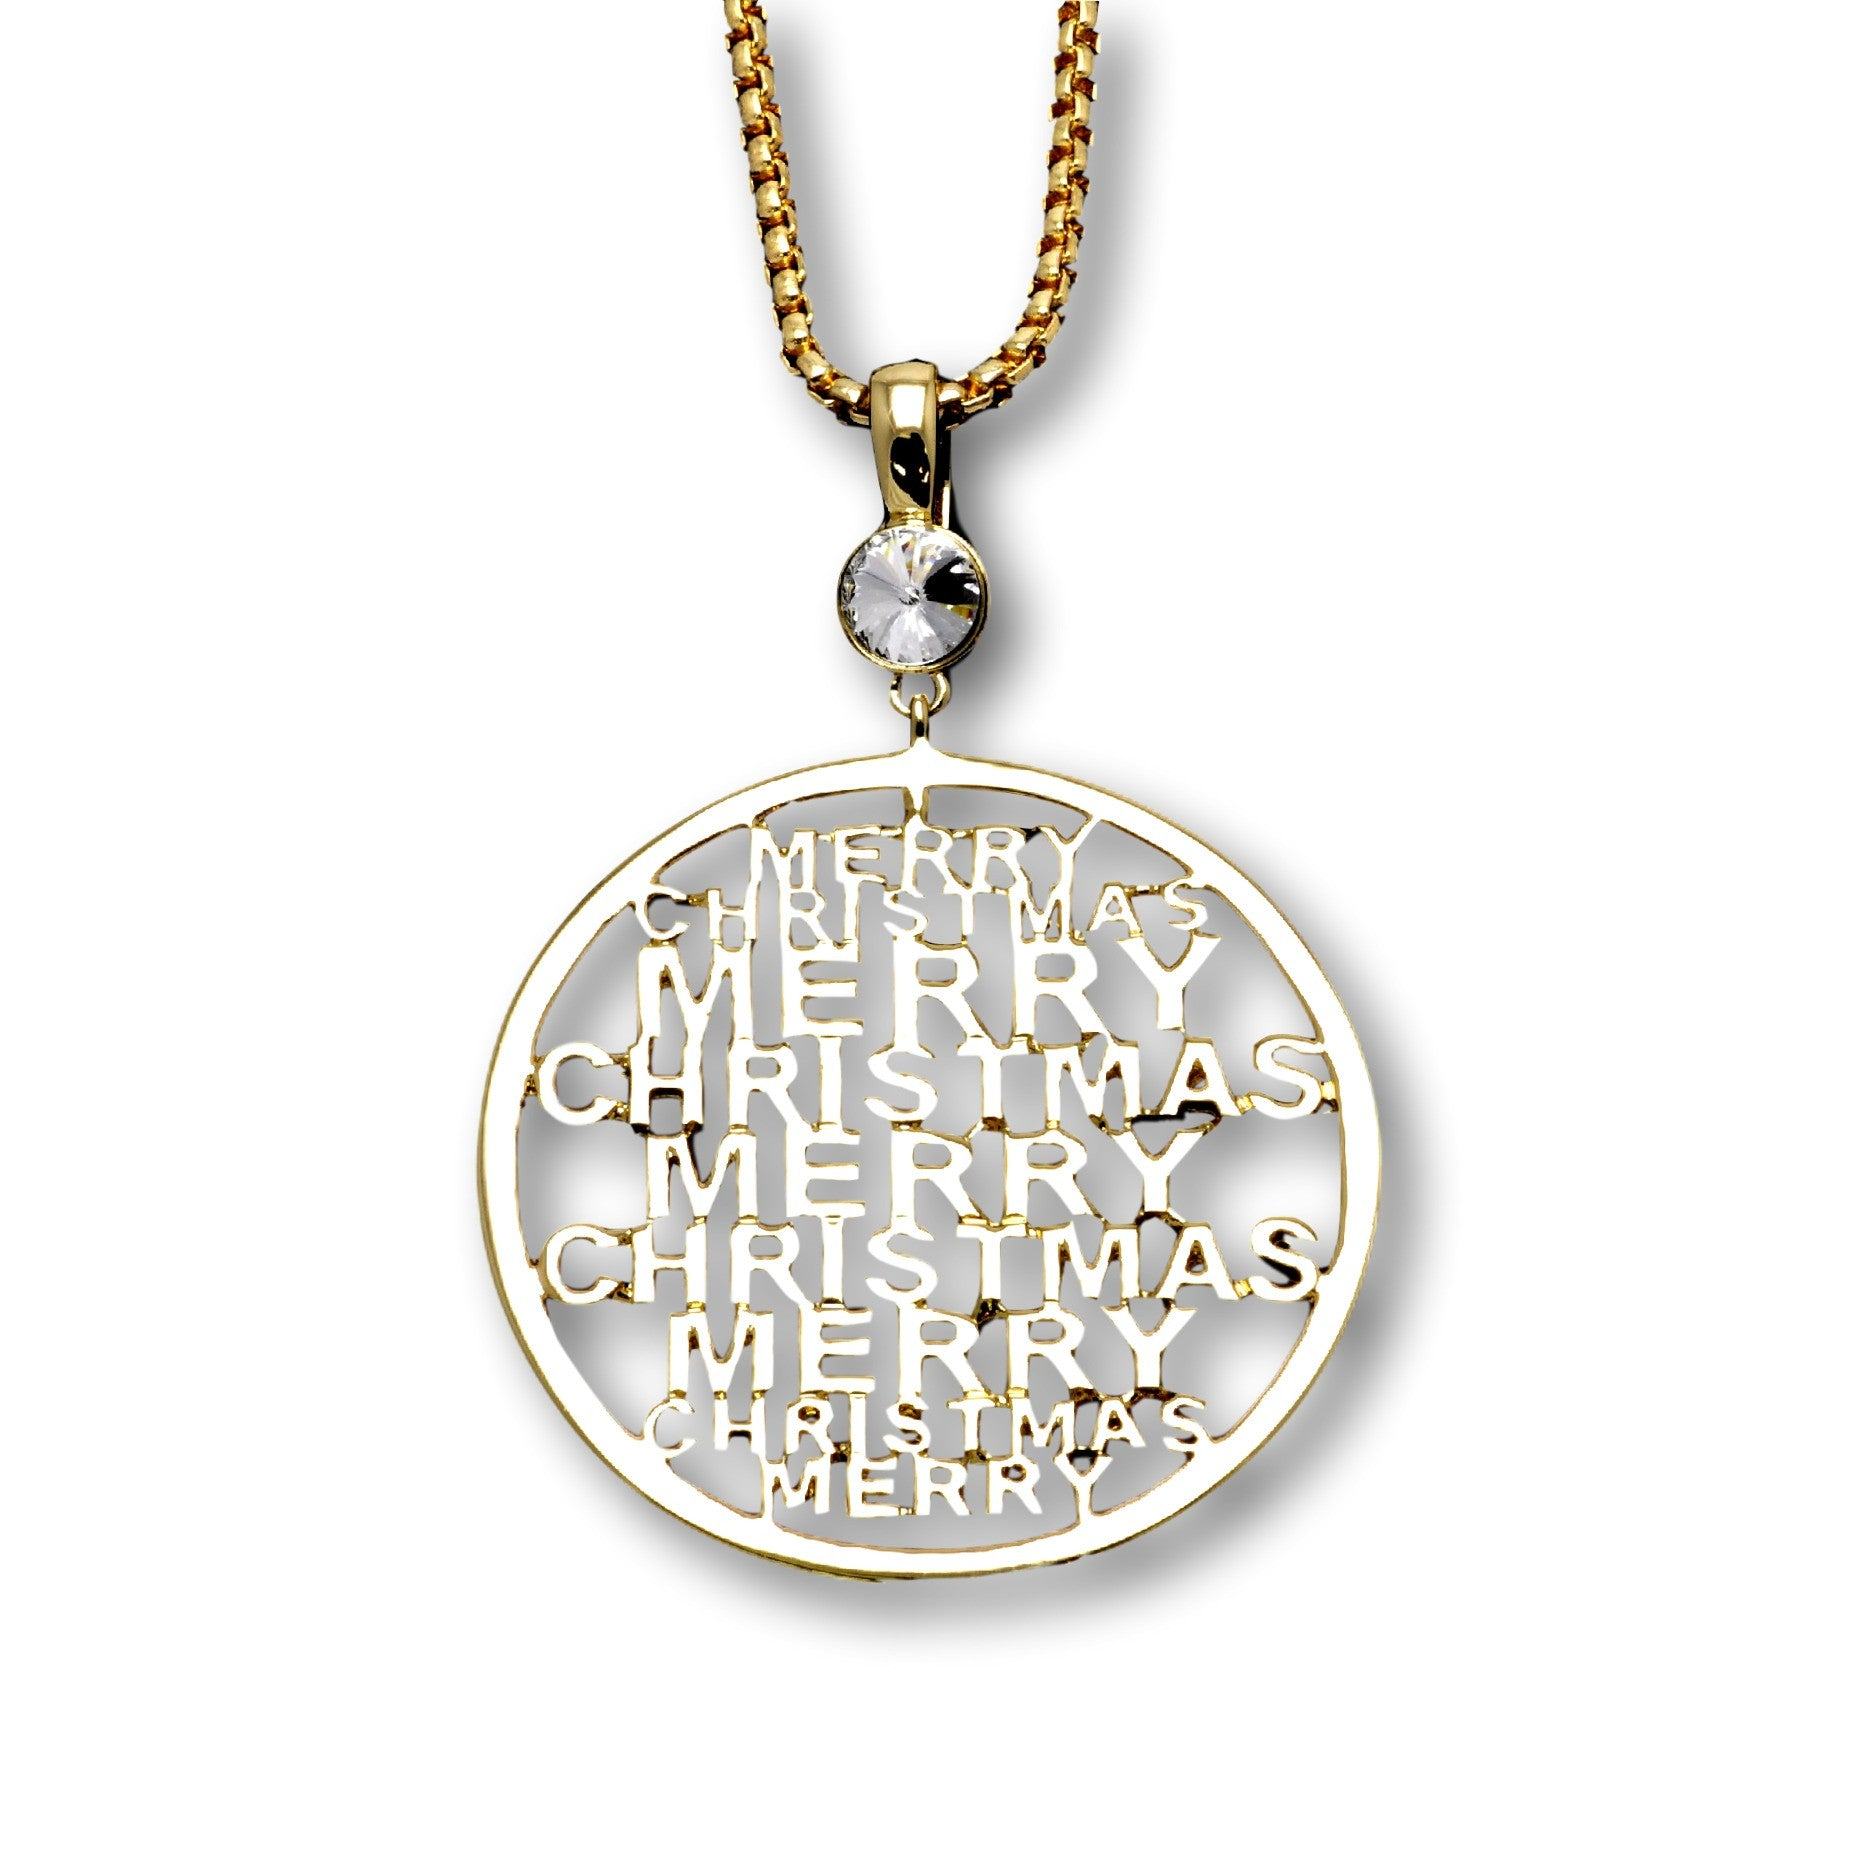 Merry Christmas Pendant (Gold)